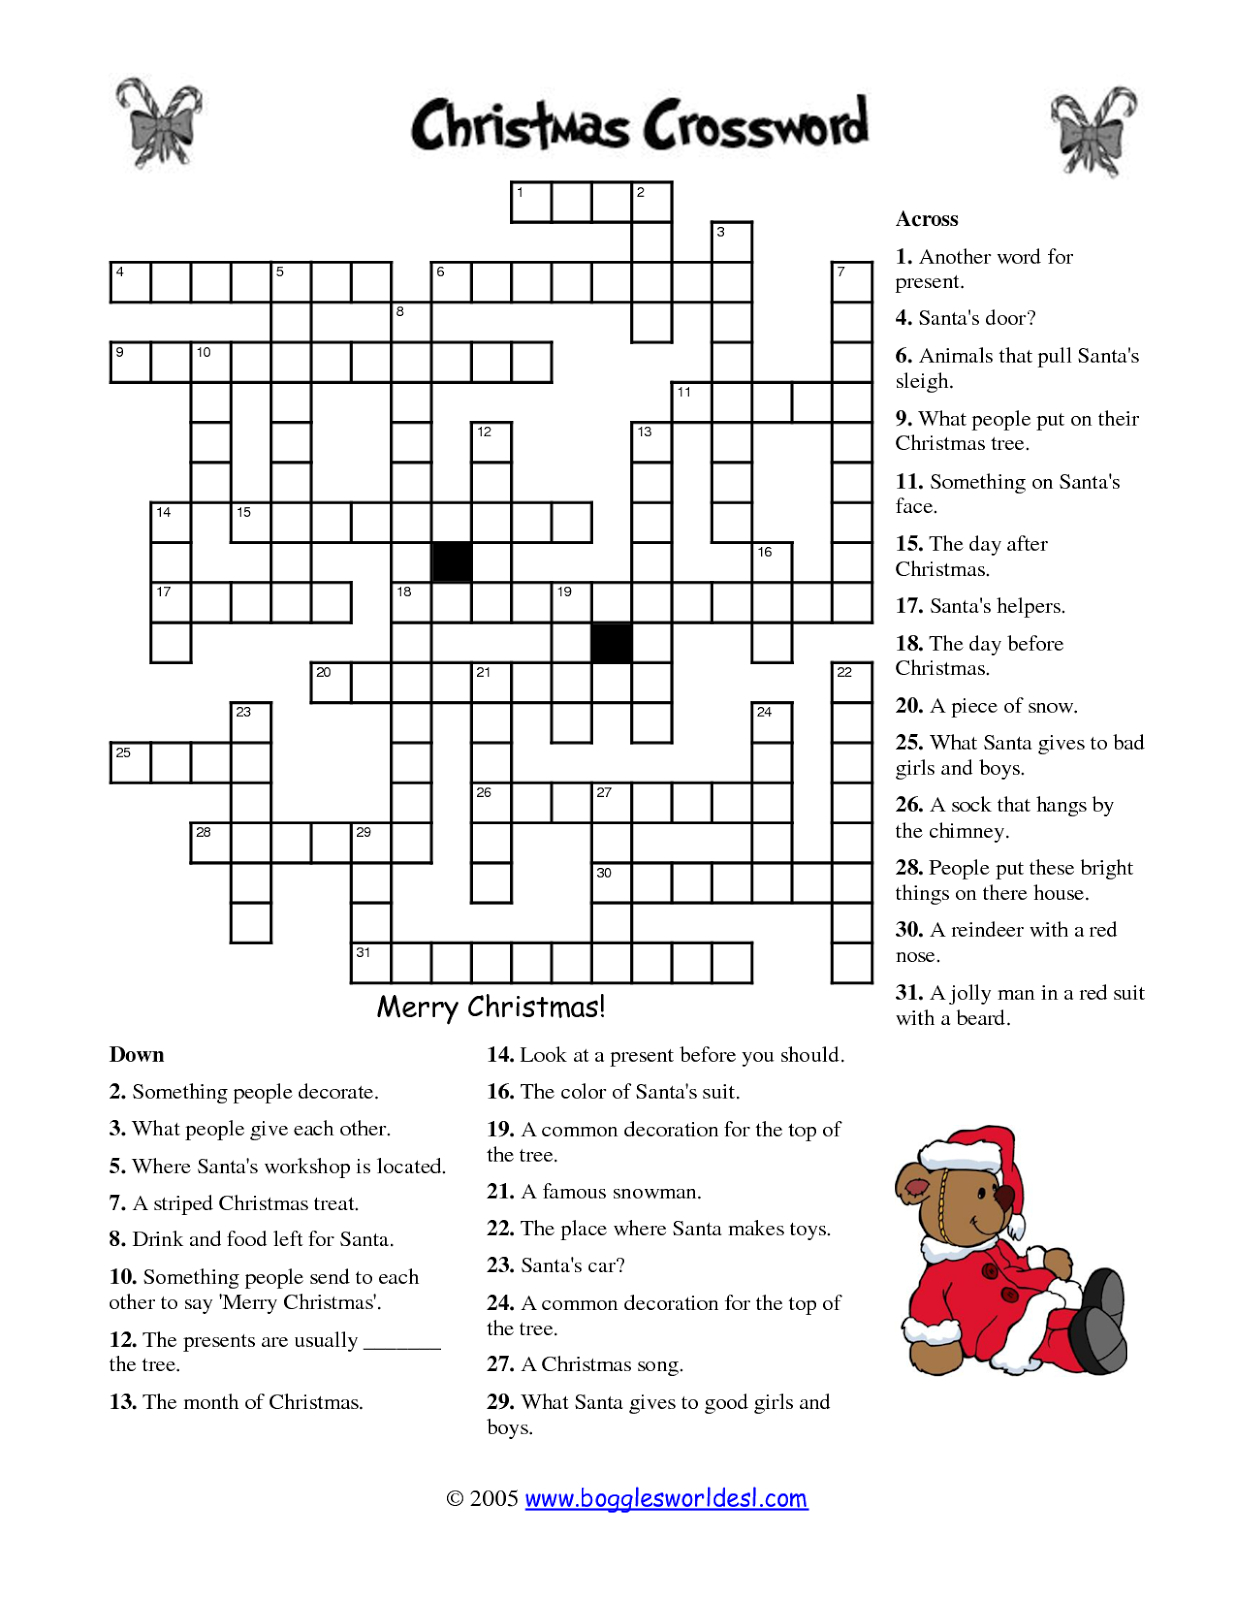 Free Printable Cards: Free Printable Crossword Puzzles | Christmas - Christmas Printable Crossword Puzzles Adults